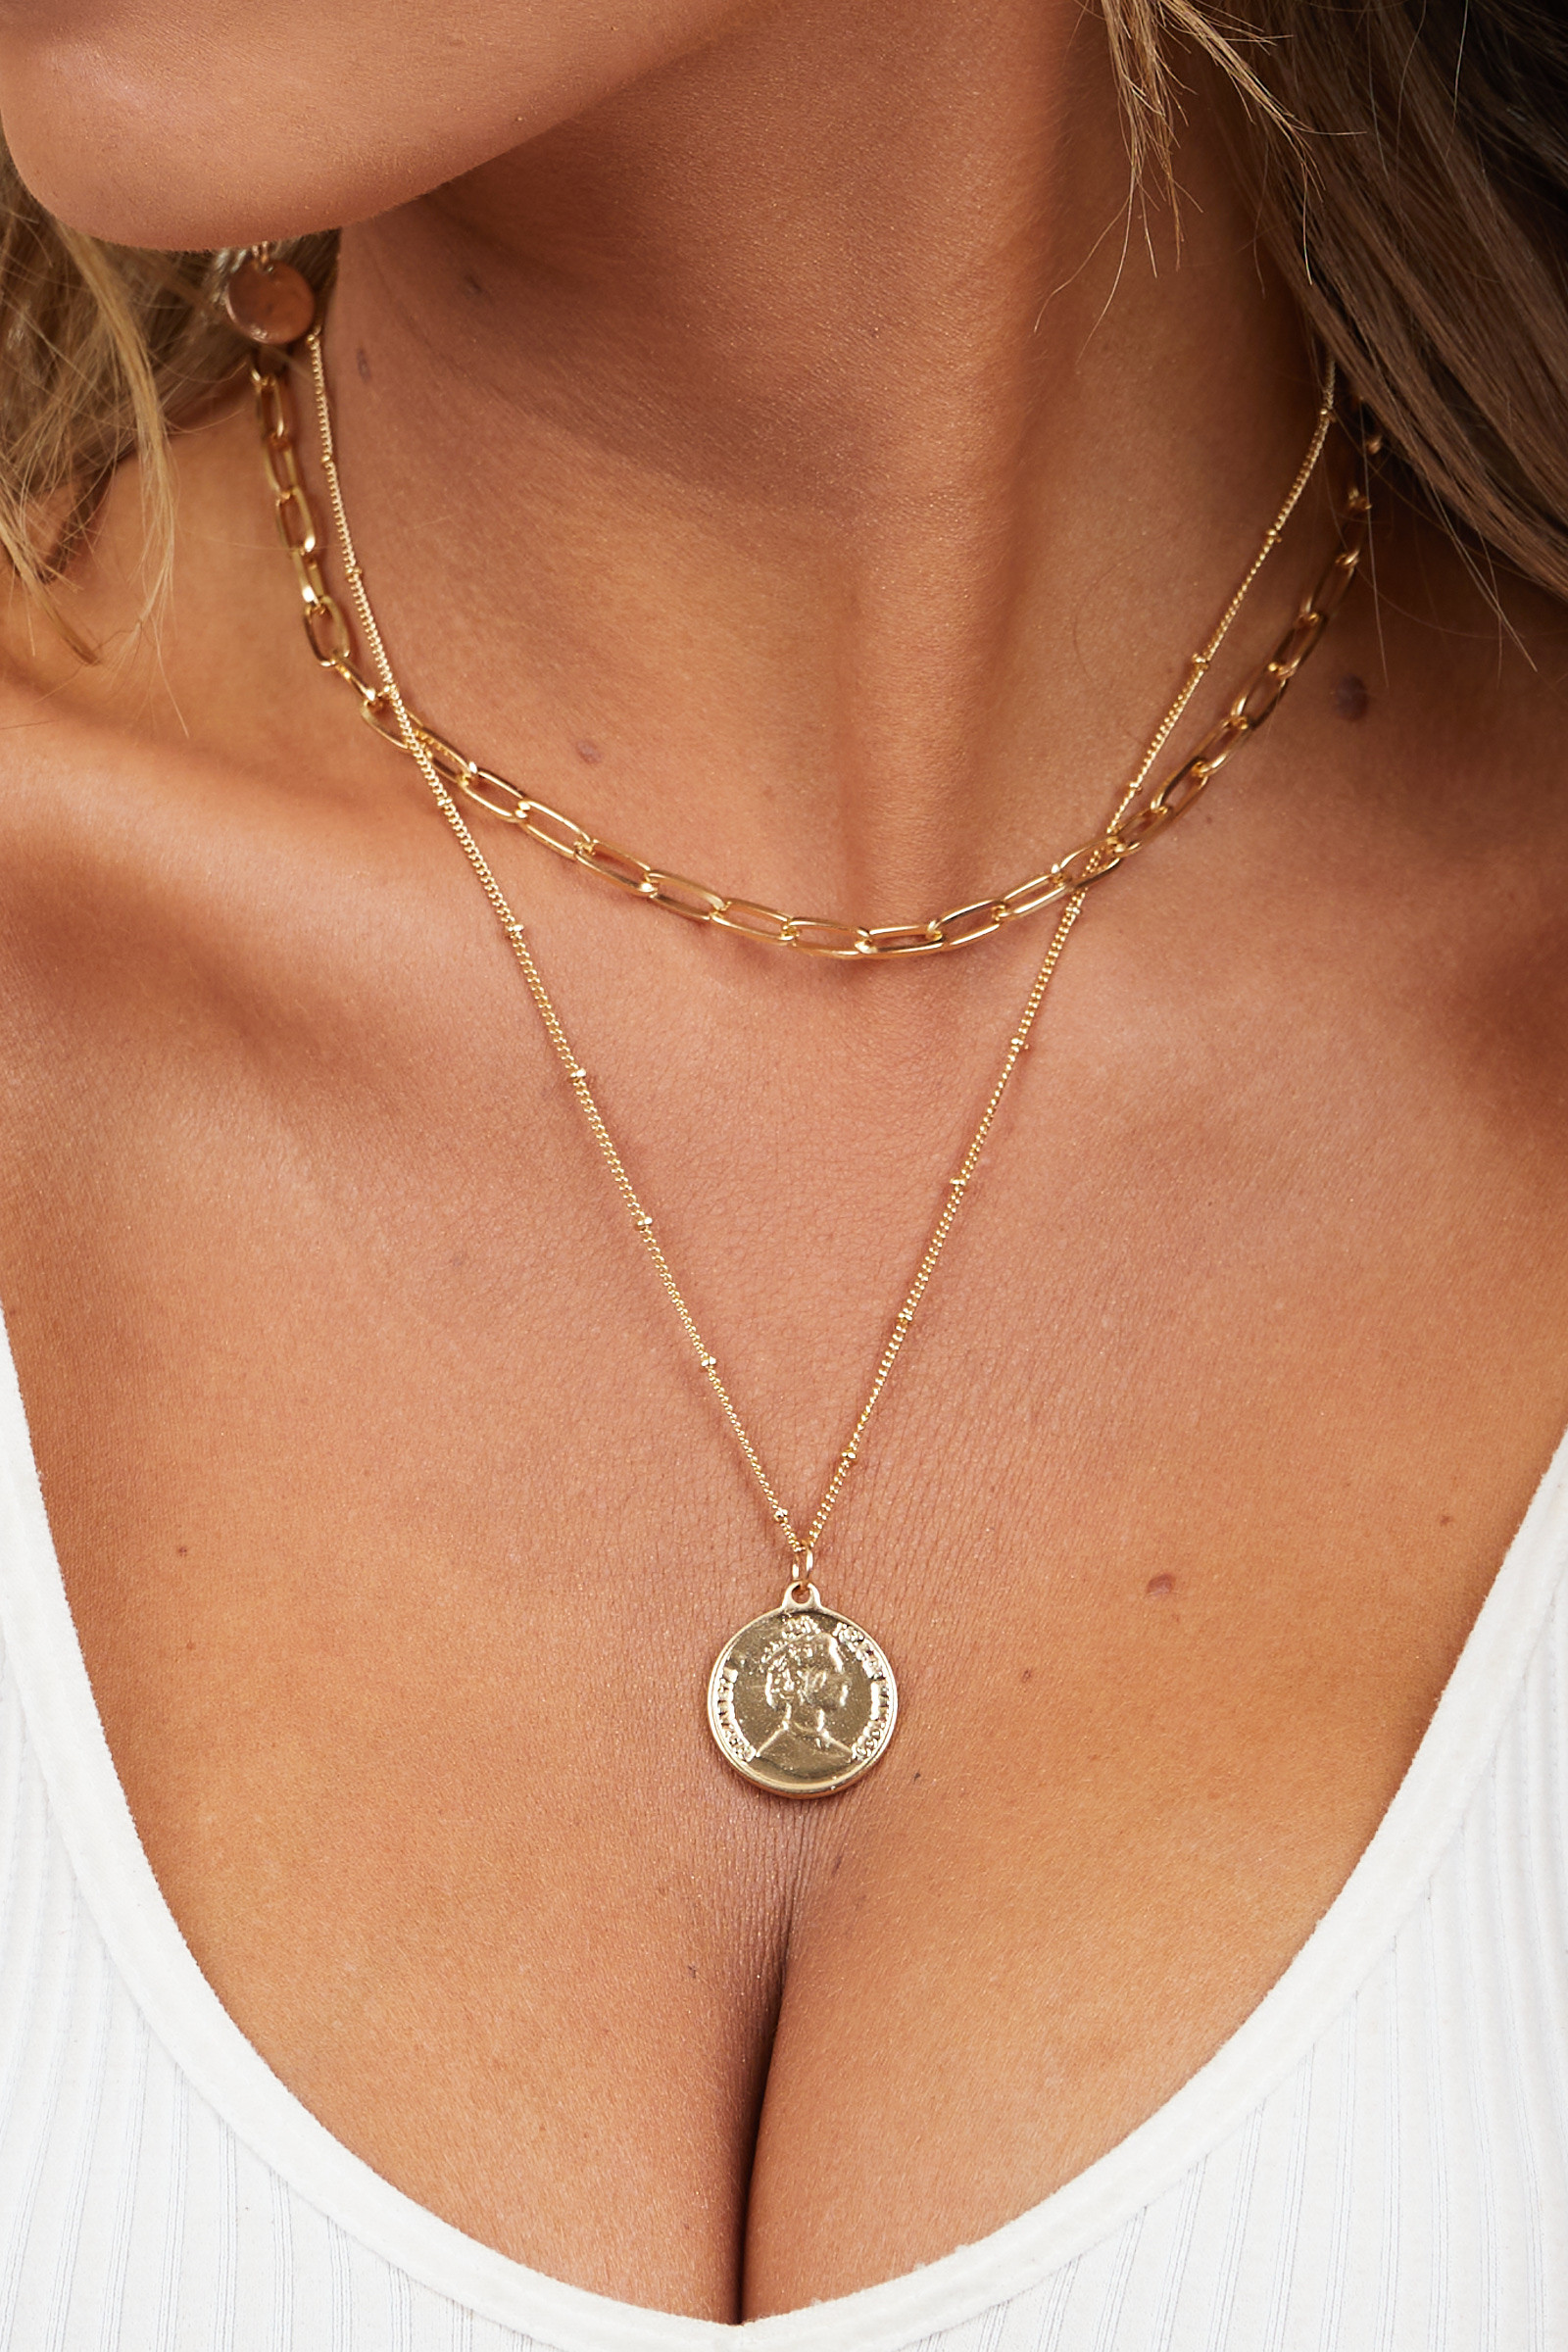 Gold Layered Necklace with Various Chains and Coin Detail